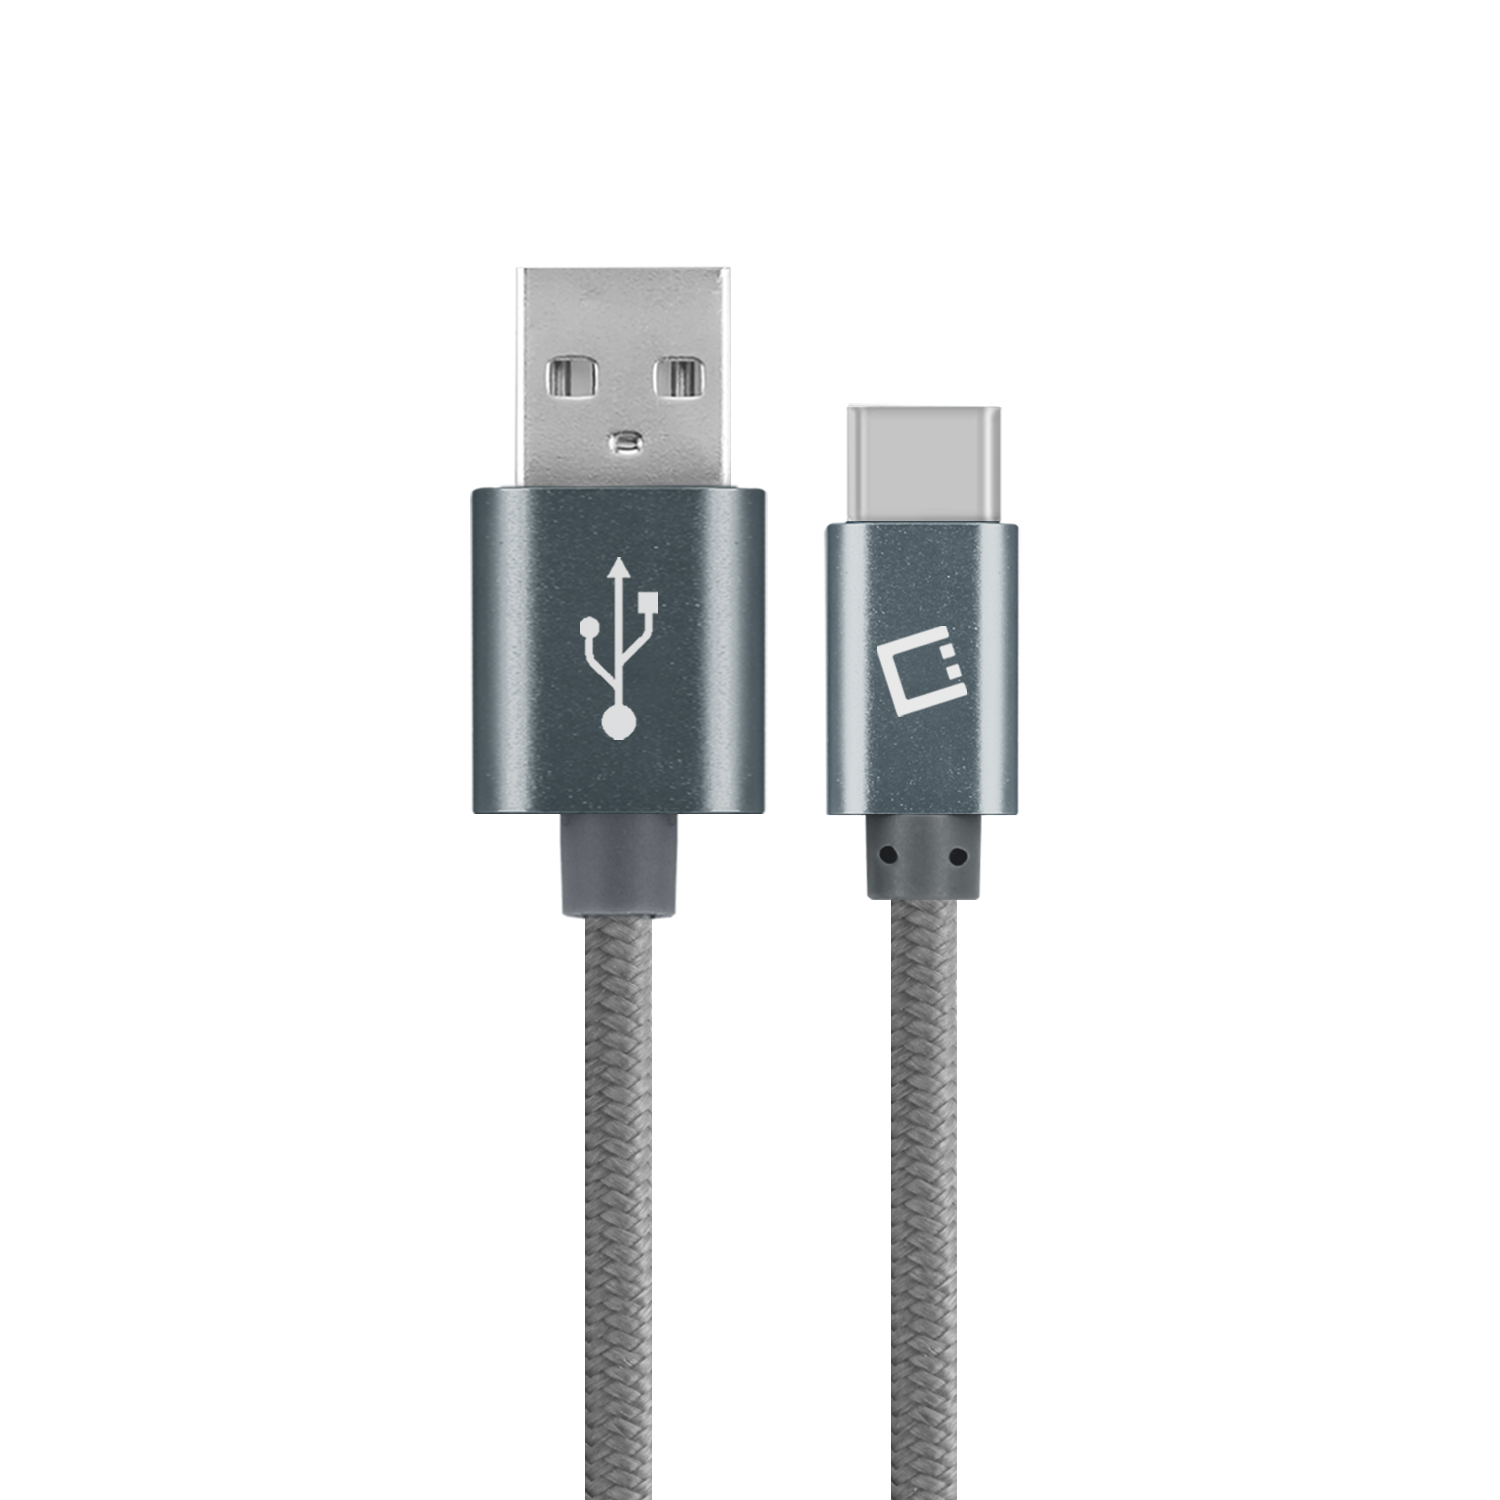 Motorola Edge Plus USB Type-C To Type-A Braided Data Power Cable Grey 10ft Braided